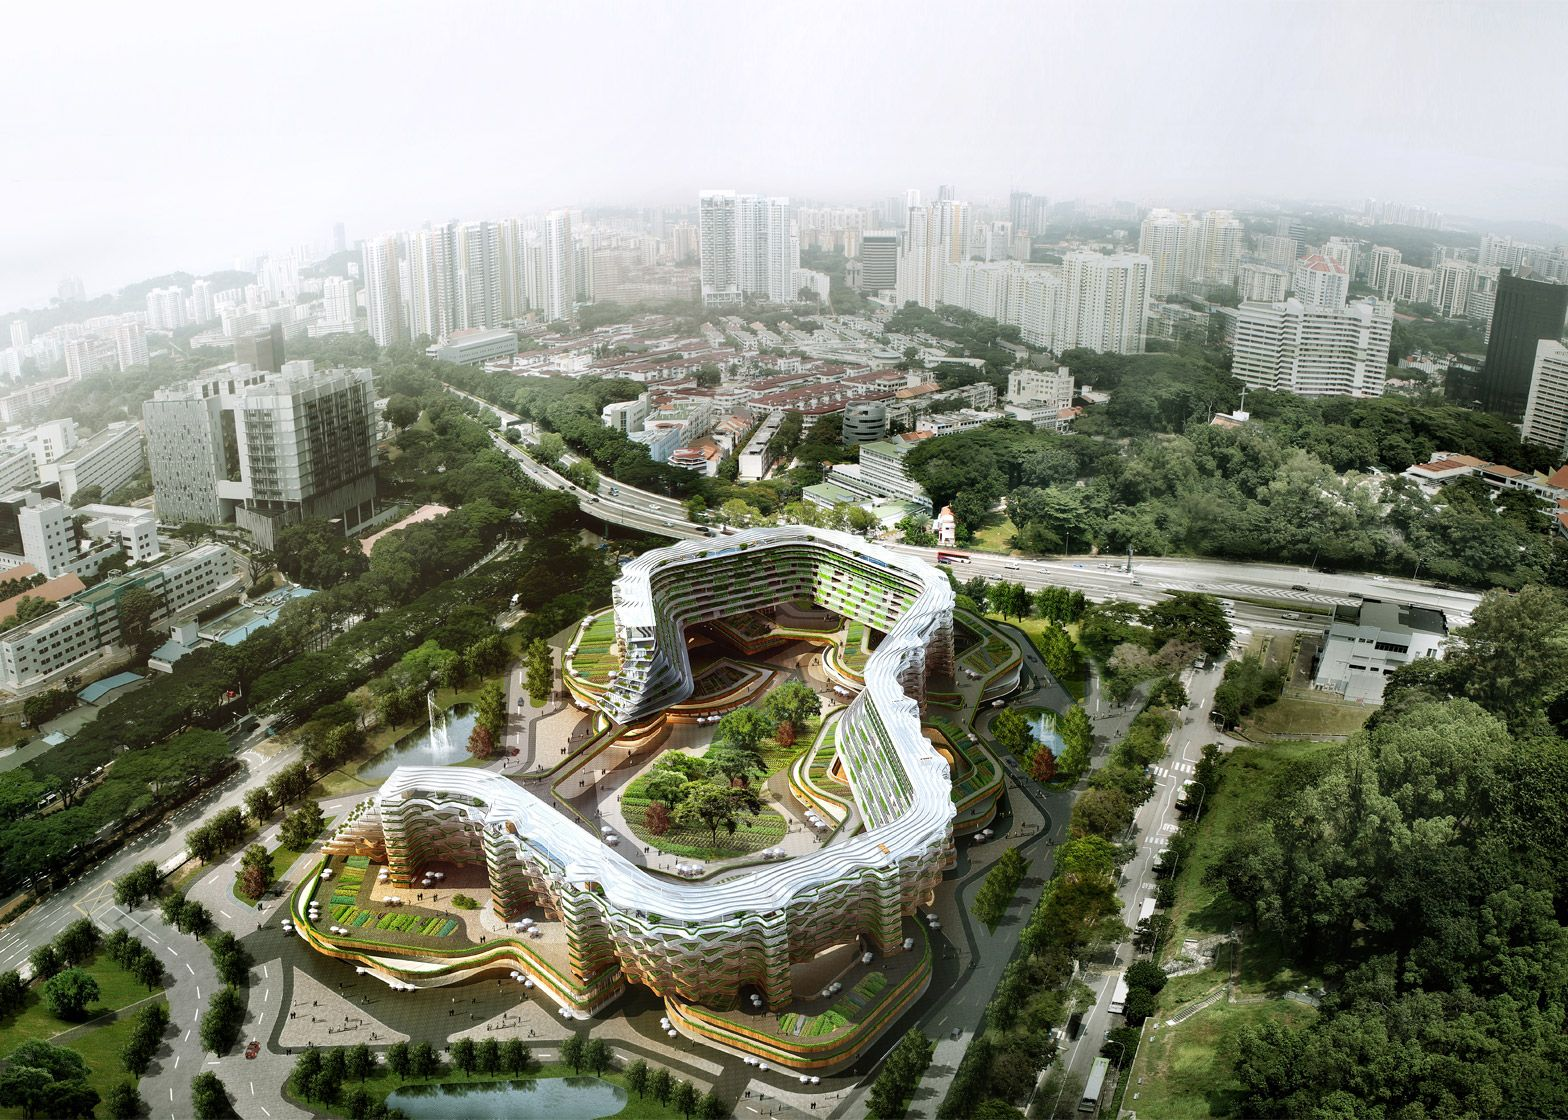 Spark has designed a model for the Asian retirement community.